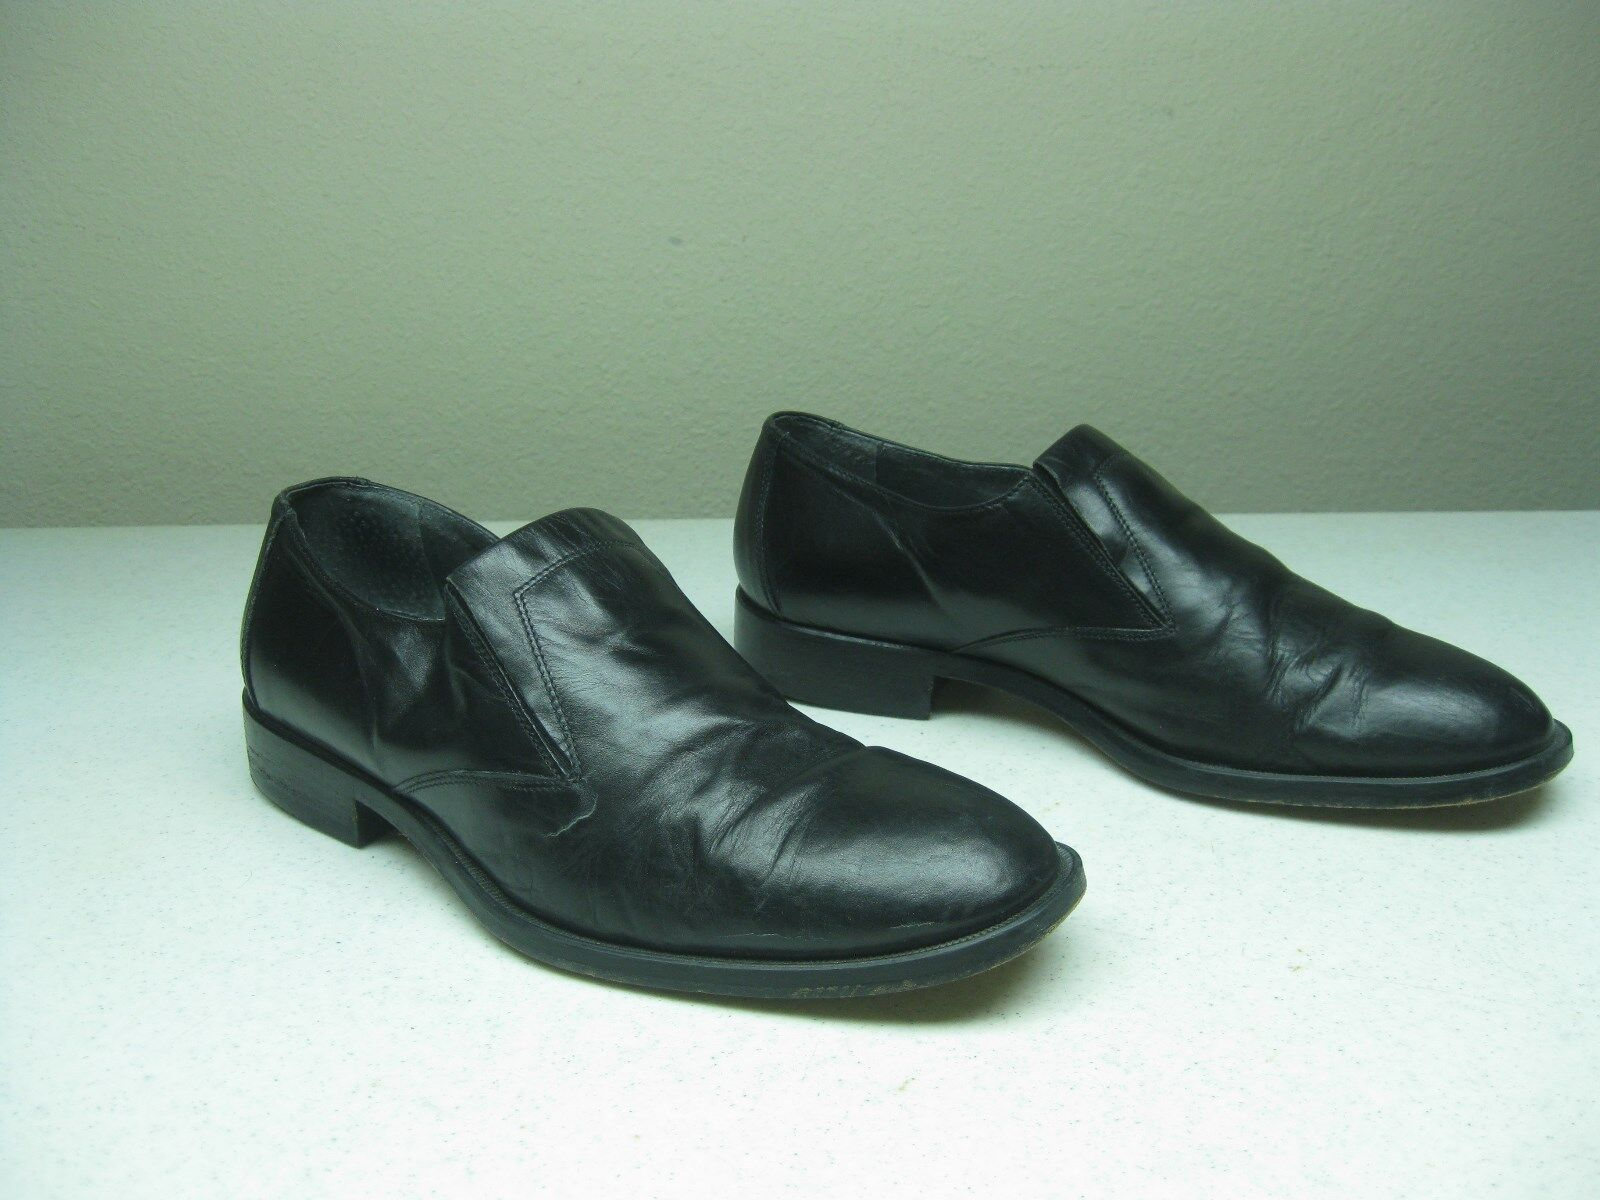 MENS Black MASSIMO ITALIAN DRESS CASUAL SLIP ON SHOES-SIZE 7 M